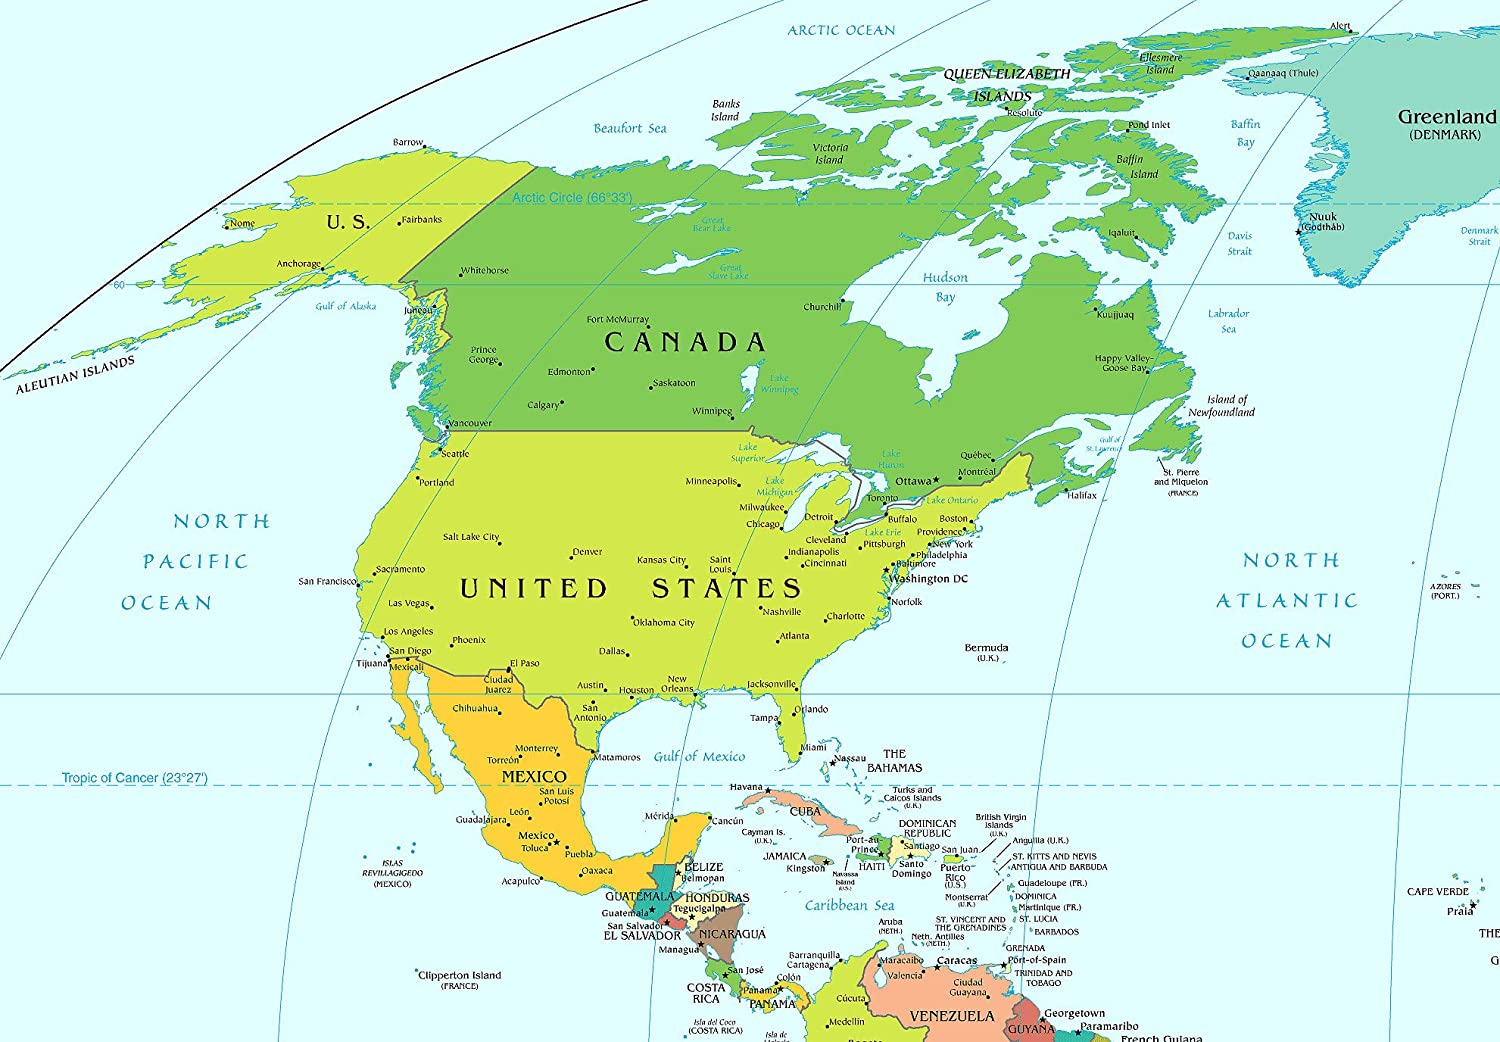 Map Of America 52 States.Amazon Com Home Comforts Laminated Map American Continent United